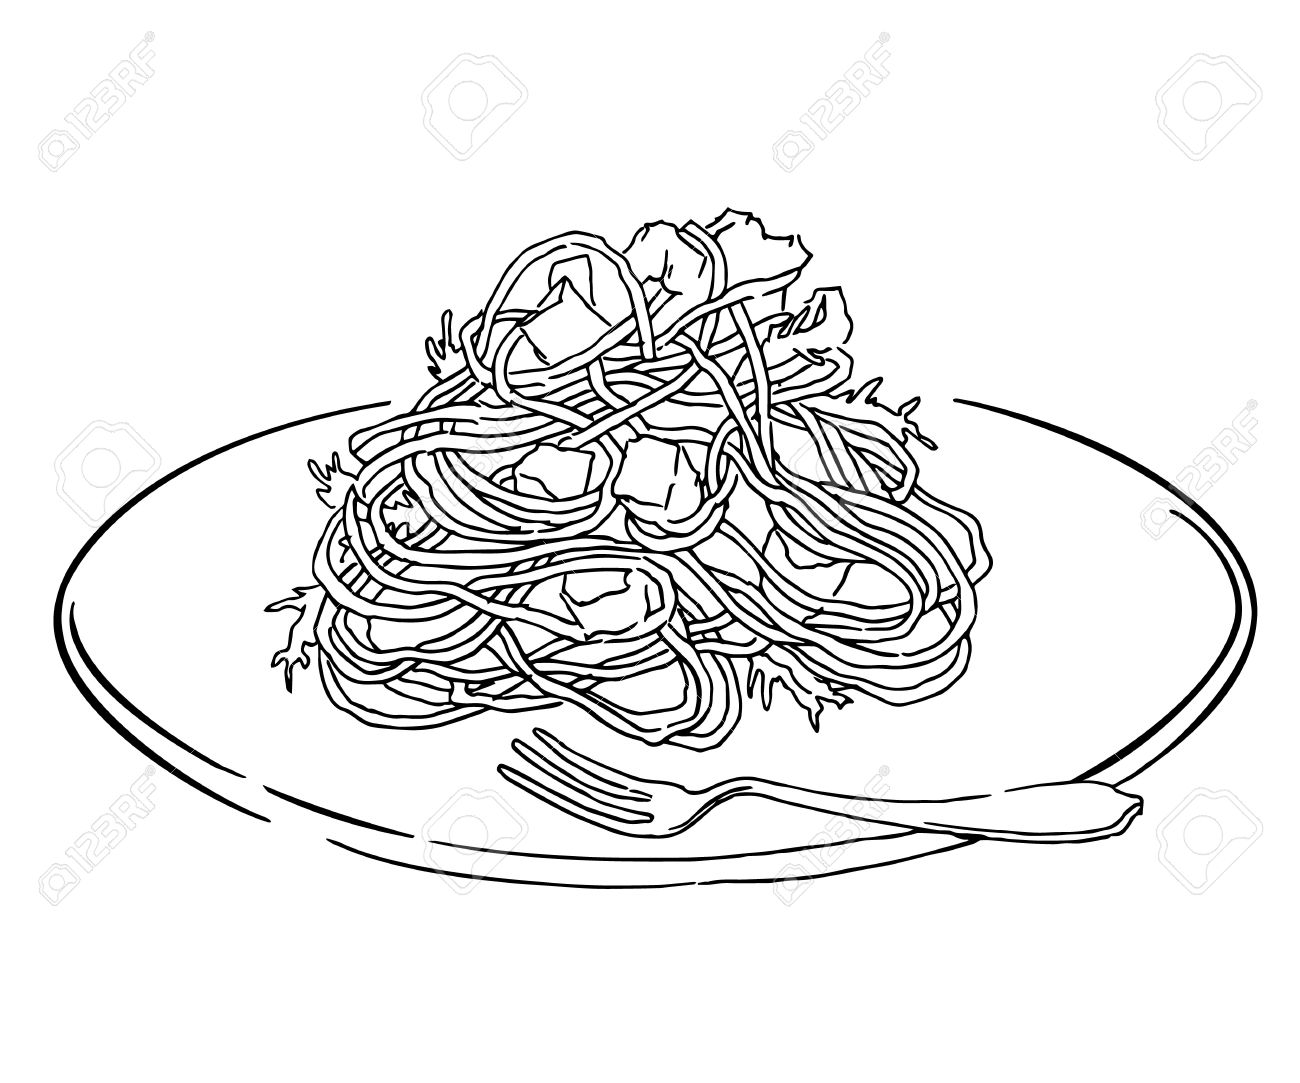 Spaghetti Food Clipart Black And White